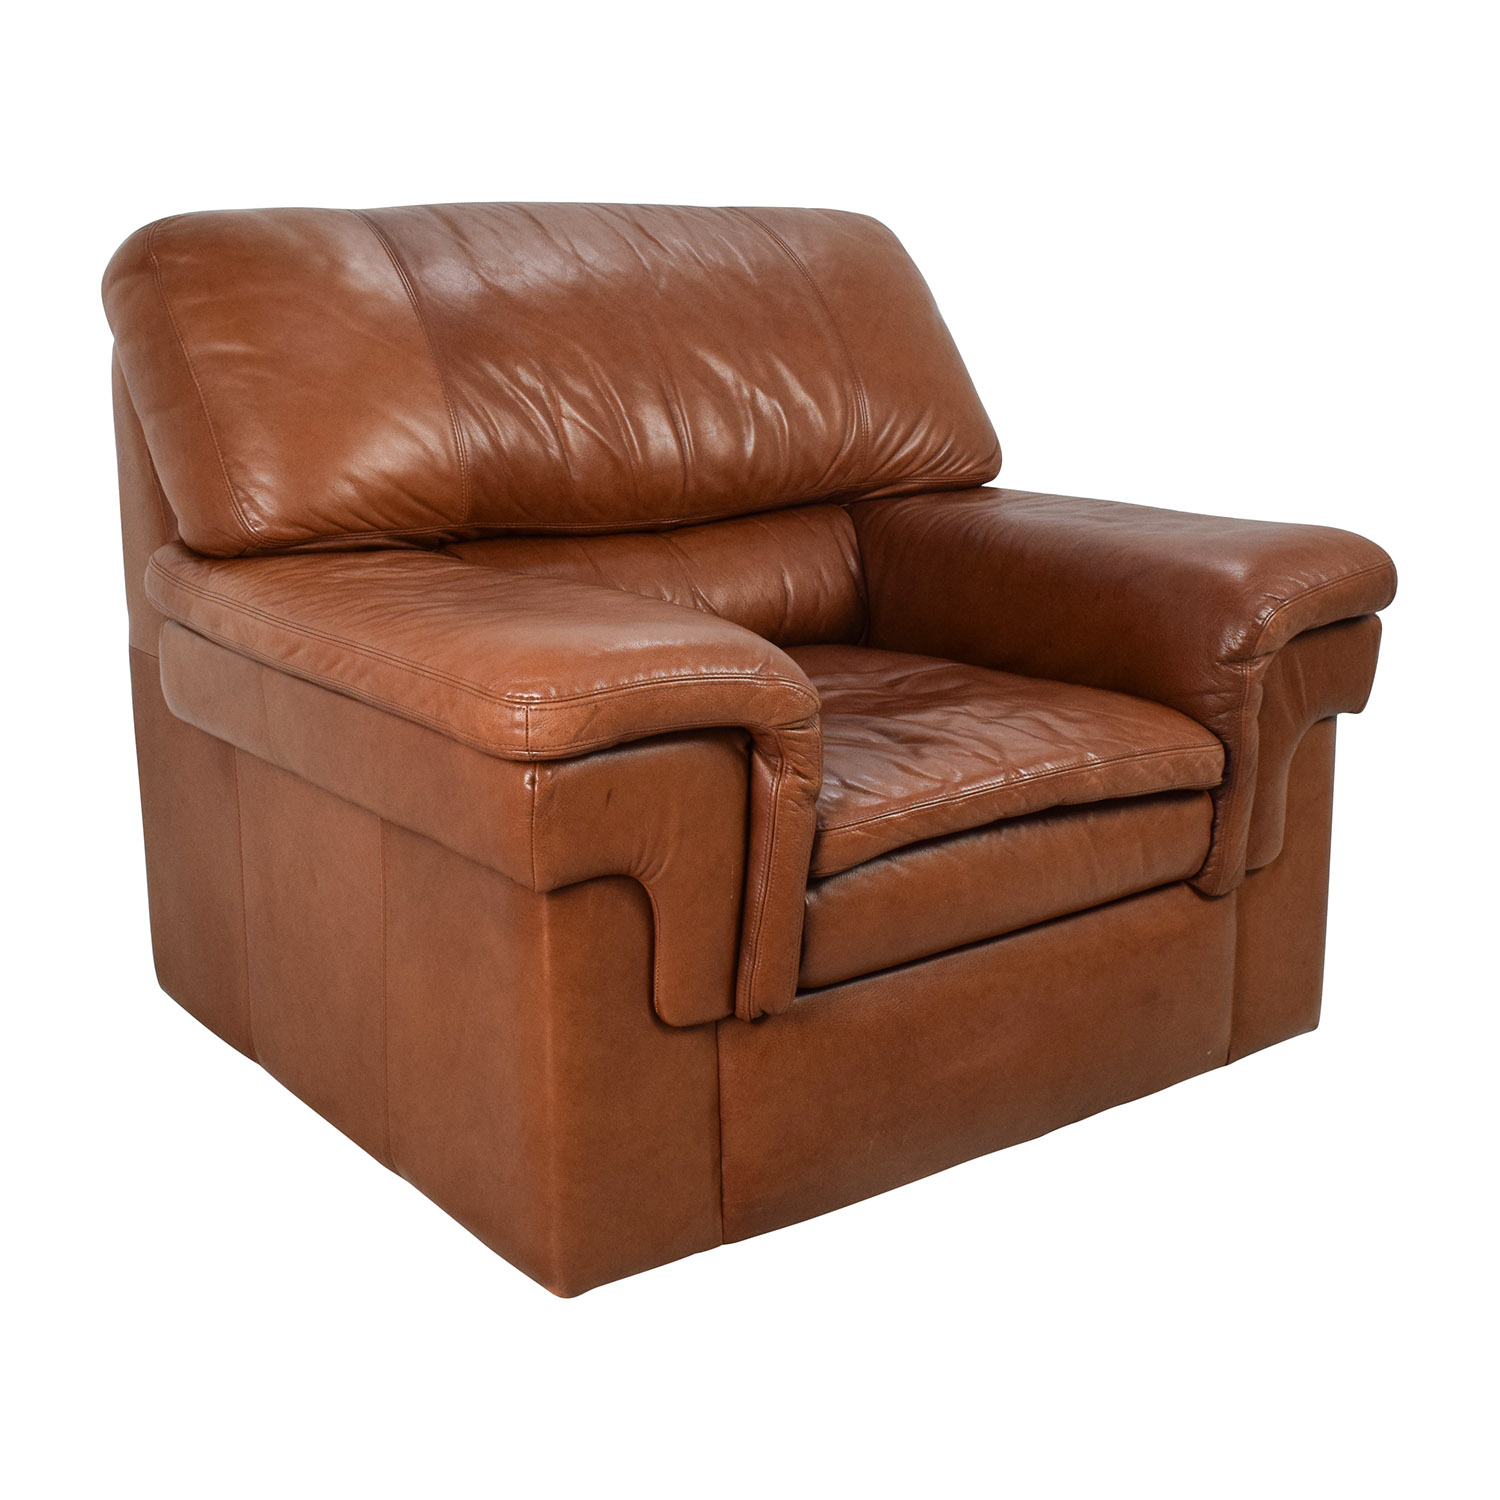 70 Off Classic Cherry Brown Leather Armchair Chairs